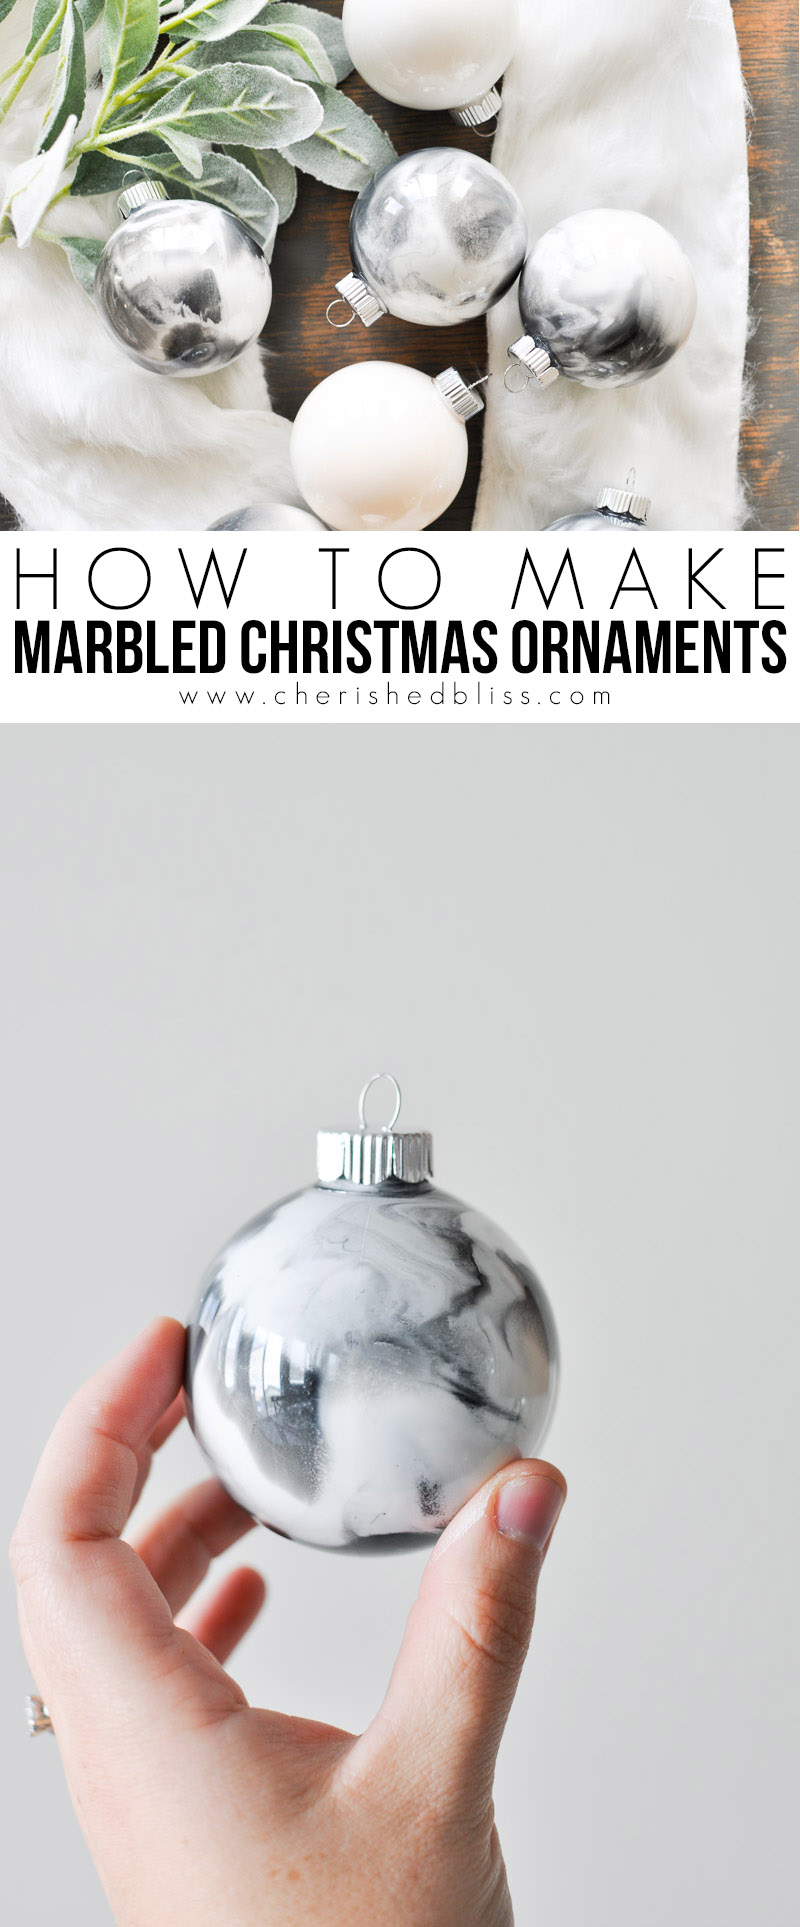 How to make marbled christmas ornaments cherished bliss